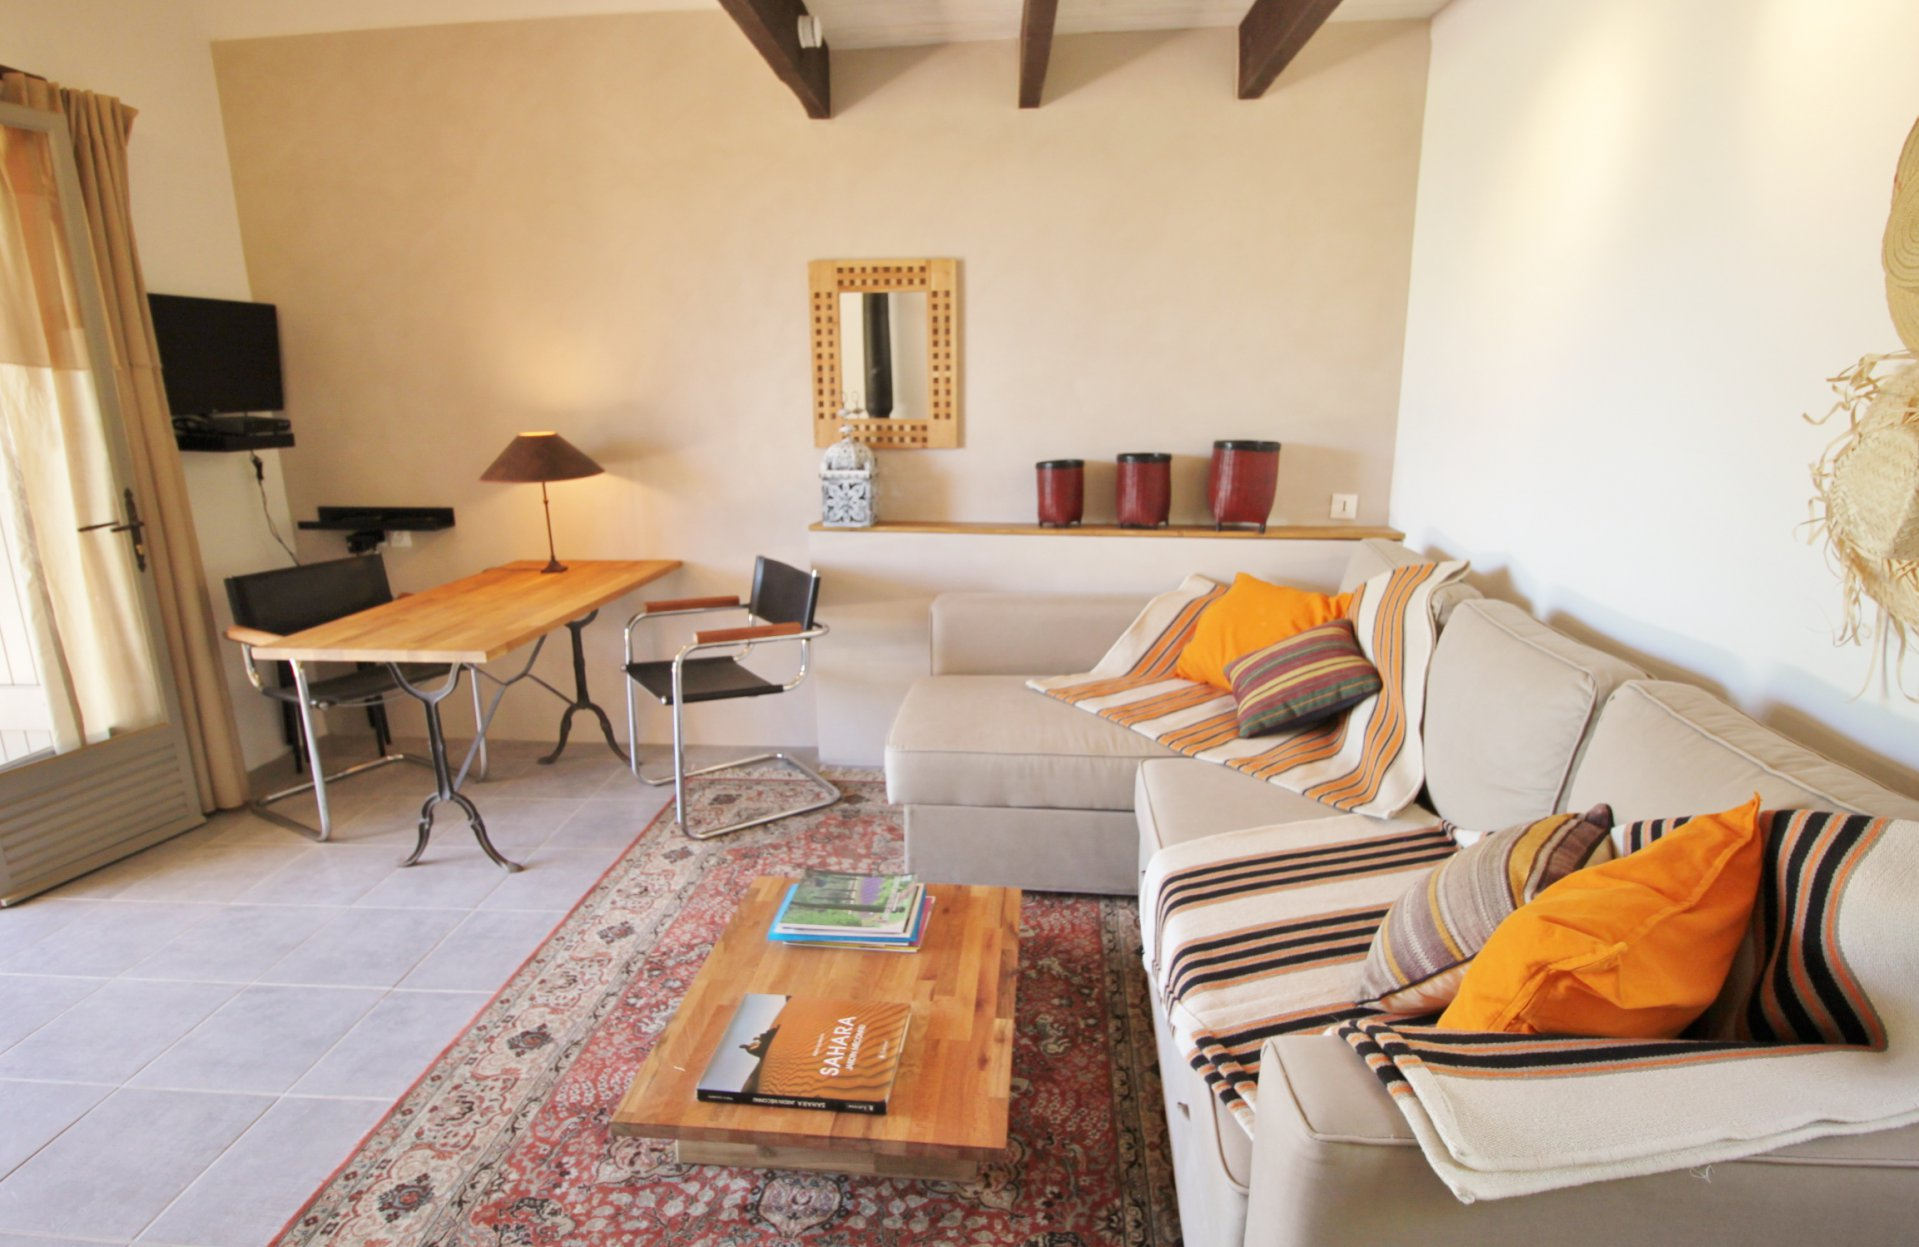 Extraordinaire villa with guesthouse in very quiet area